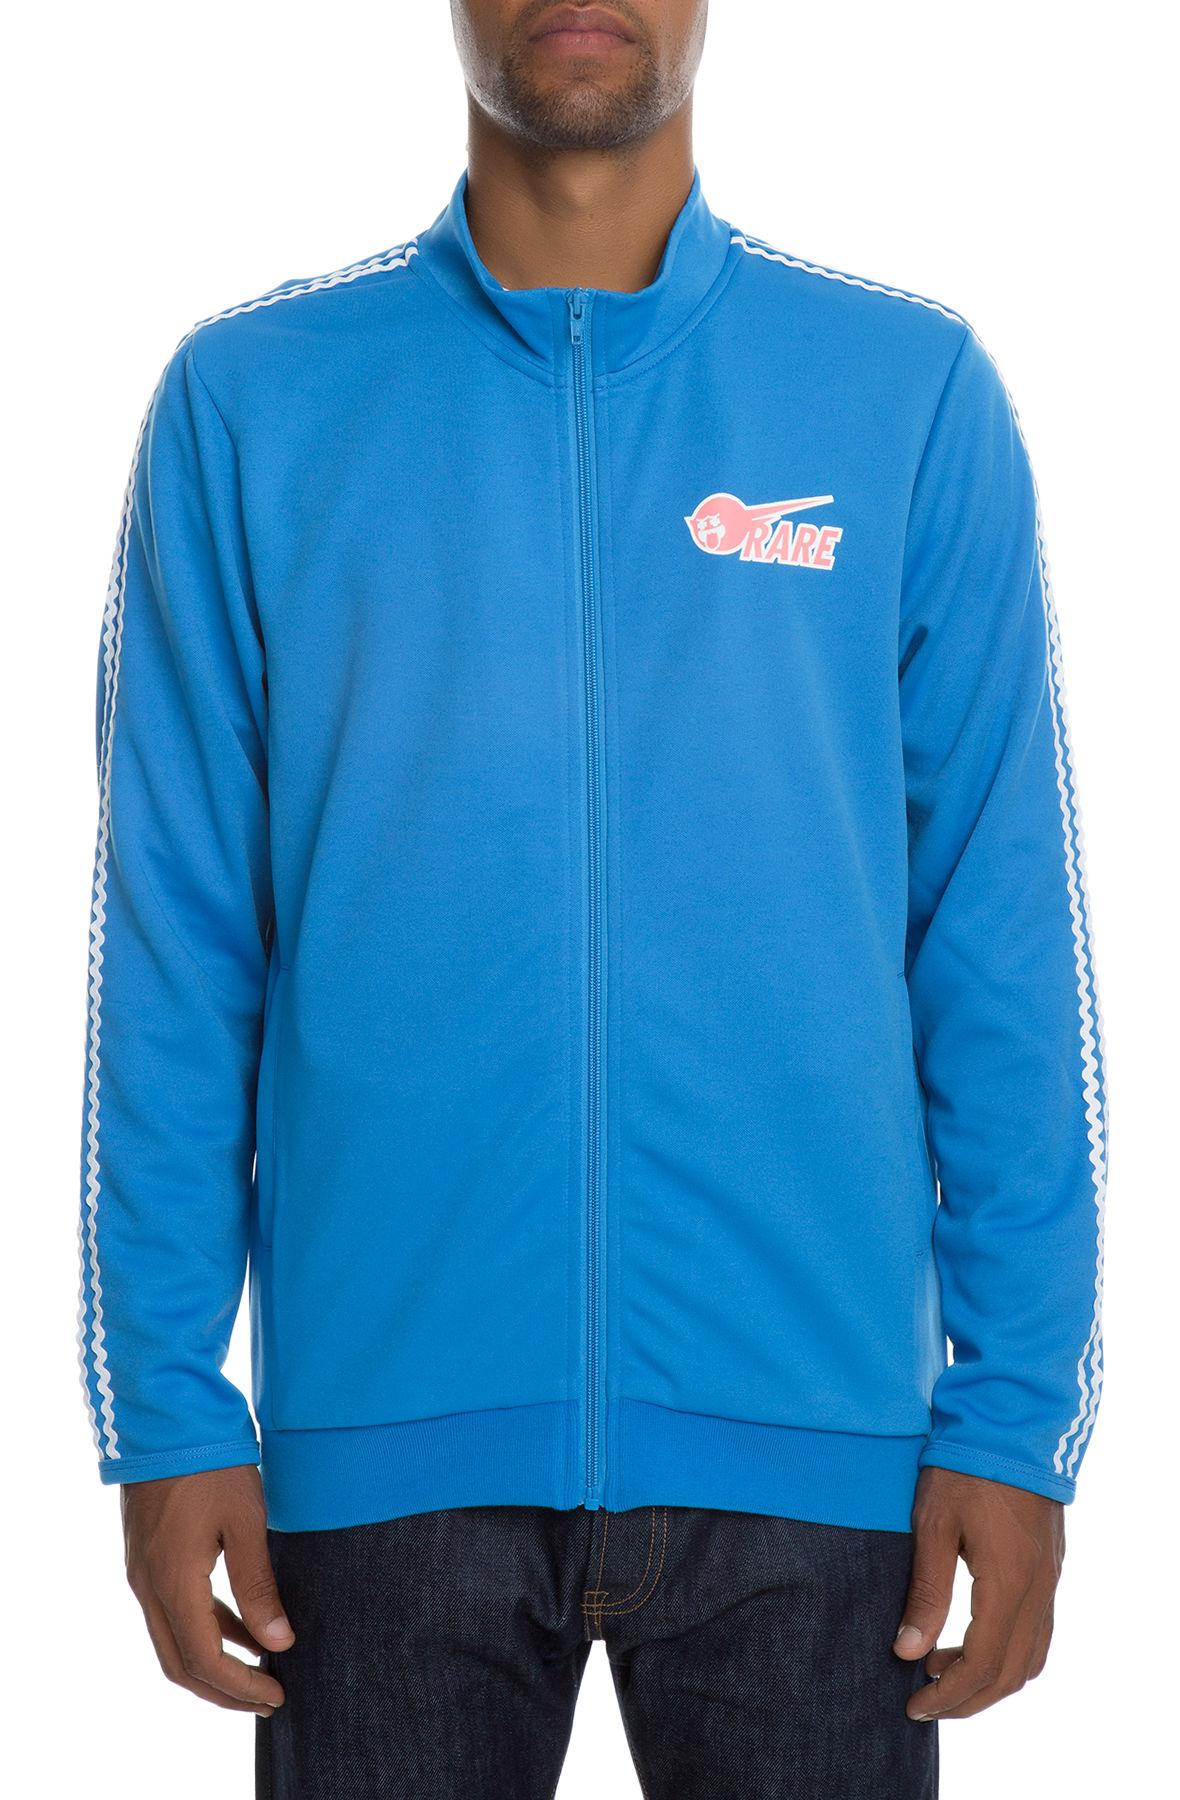 Pink Dolphin mikina WAVE STRIPE TRACK TOP- BLUE